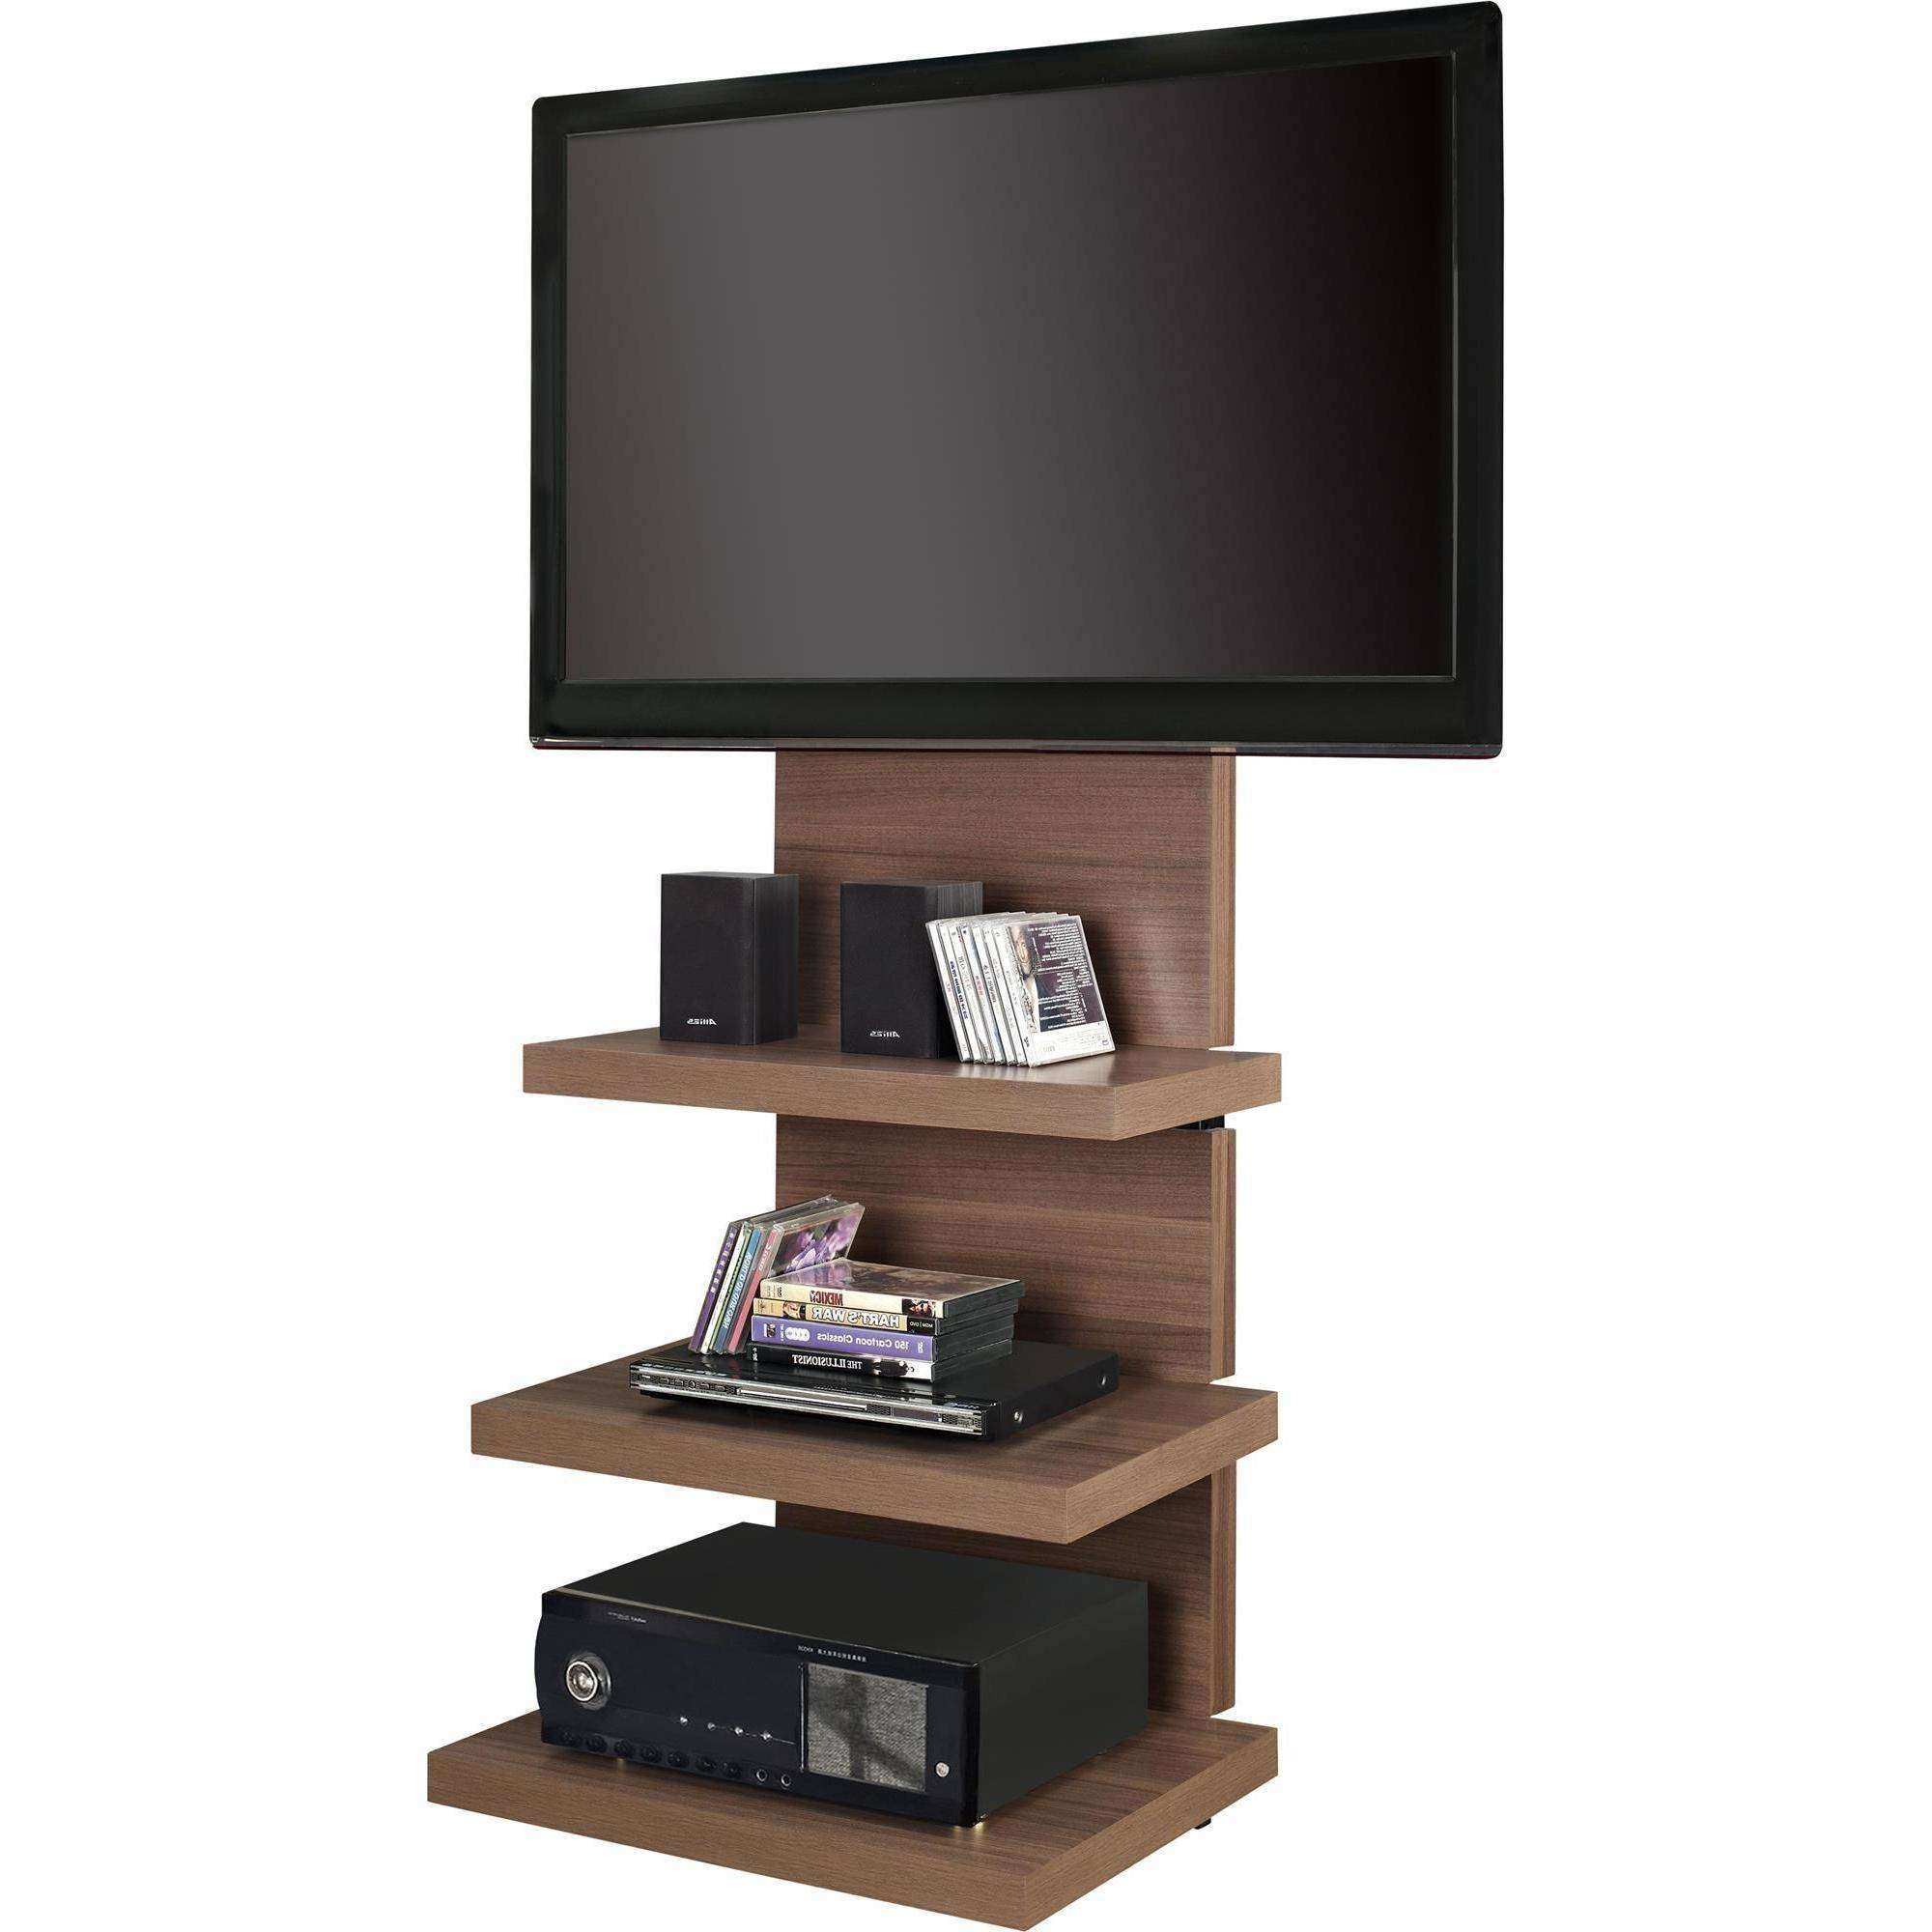 Ameriwood Home Elevation Altramount Tv Stand For Tvs Up To 60 Regarding Walnut Tv Stands For Flat Screens (View 1 of 20)